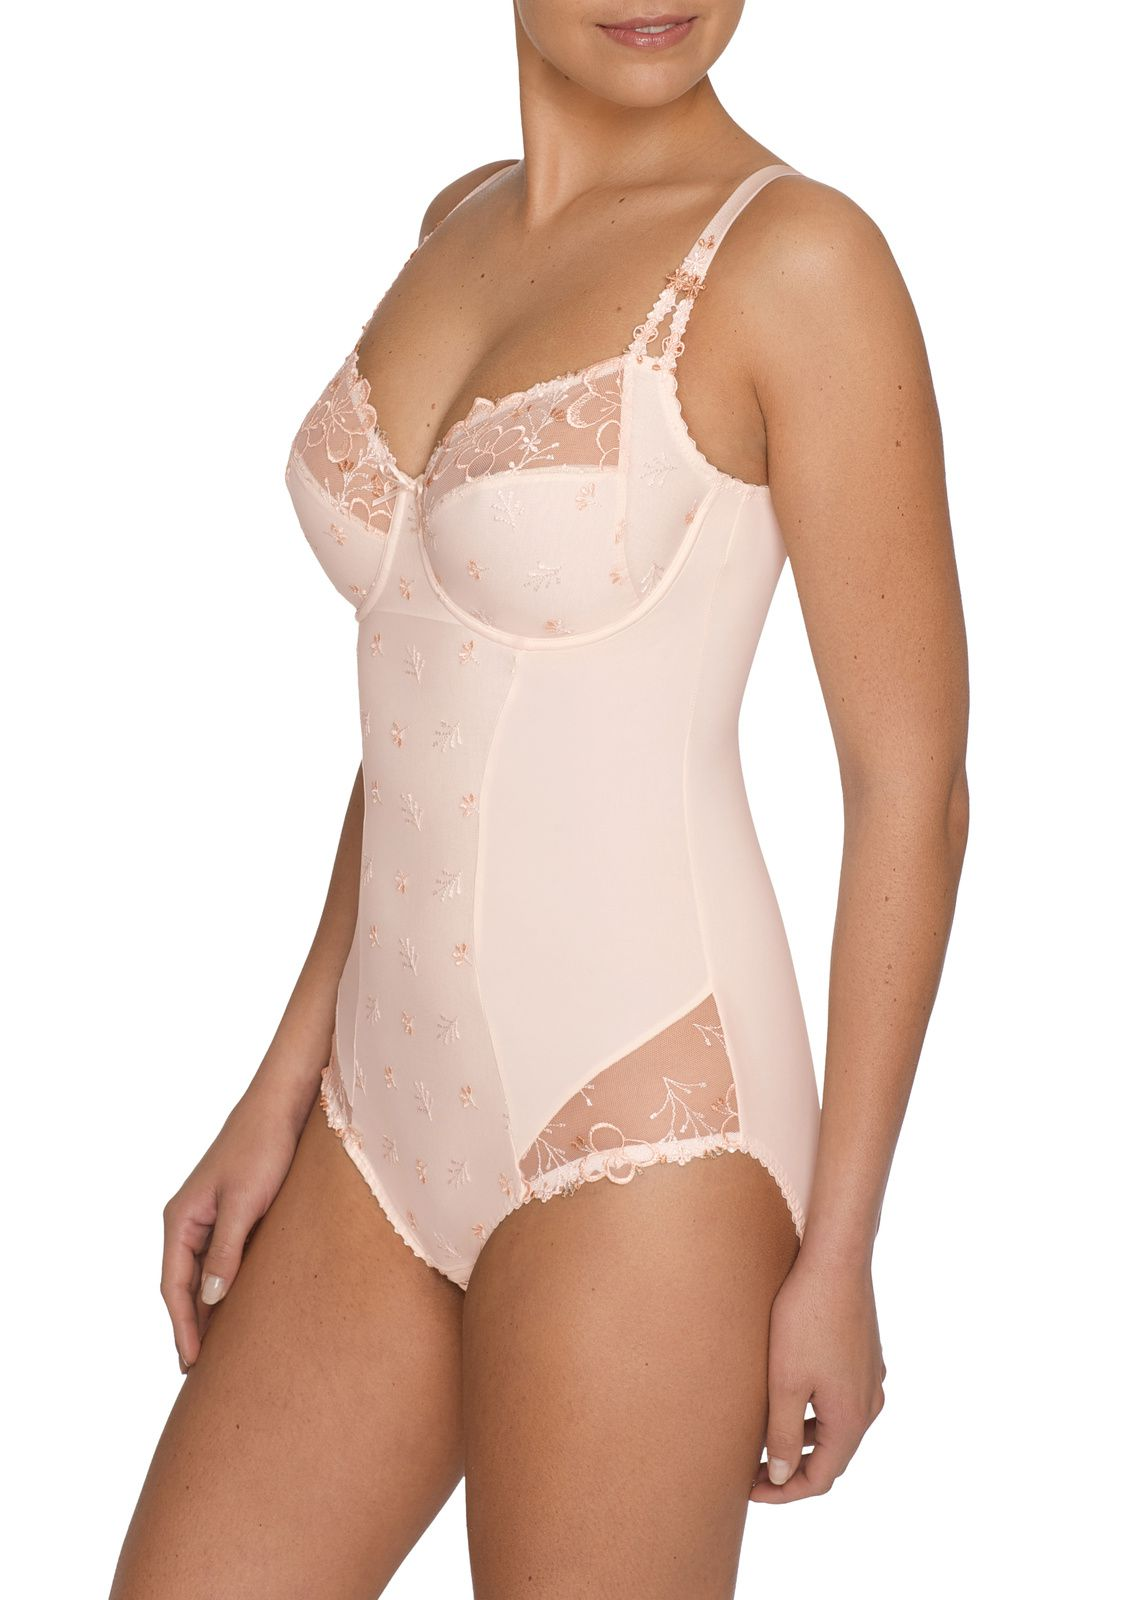 Modellante Body Molded Gainant Edge body nude Miraclesuit Beige Cup Donna Bodybriefer Confort 38dd Smooth Wonderful Cuisse chair Contenuto correlato. Download Pdf Scarica; Donna kz7 Nero Pantalone Zuava Mambain Da baggy Stampa Pantaloni CqntxzU.